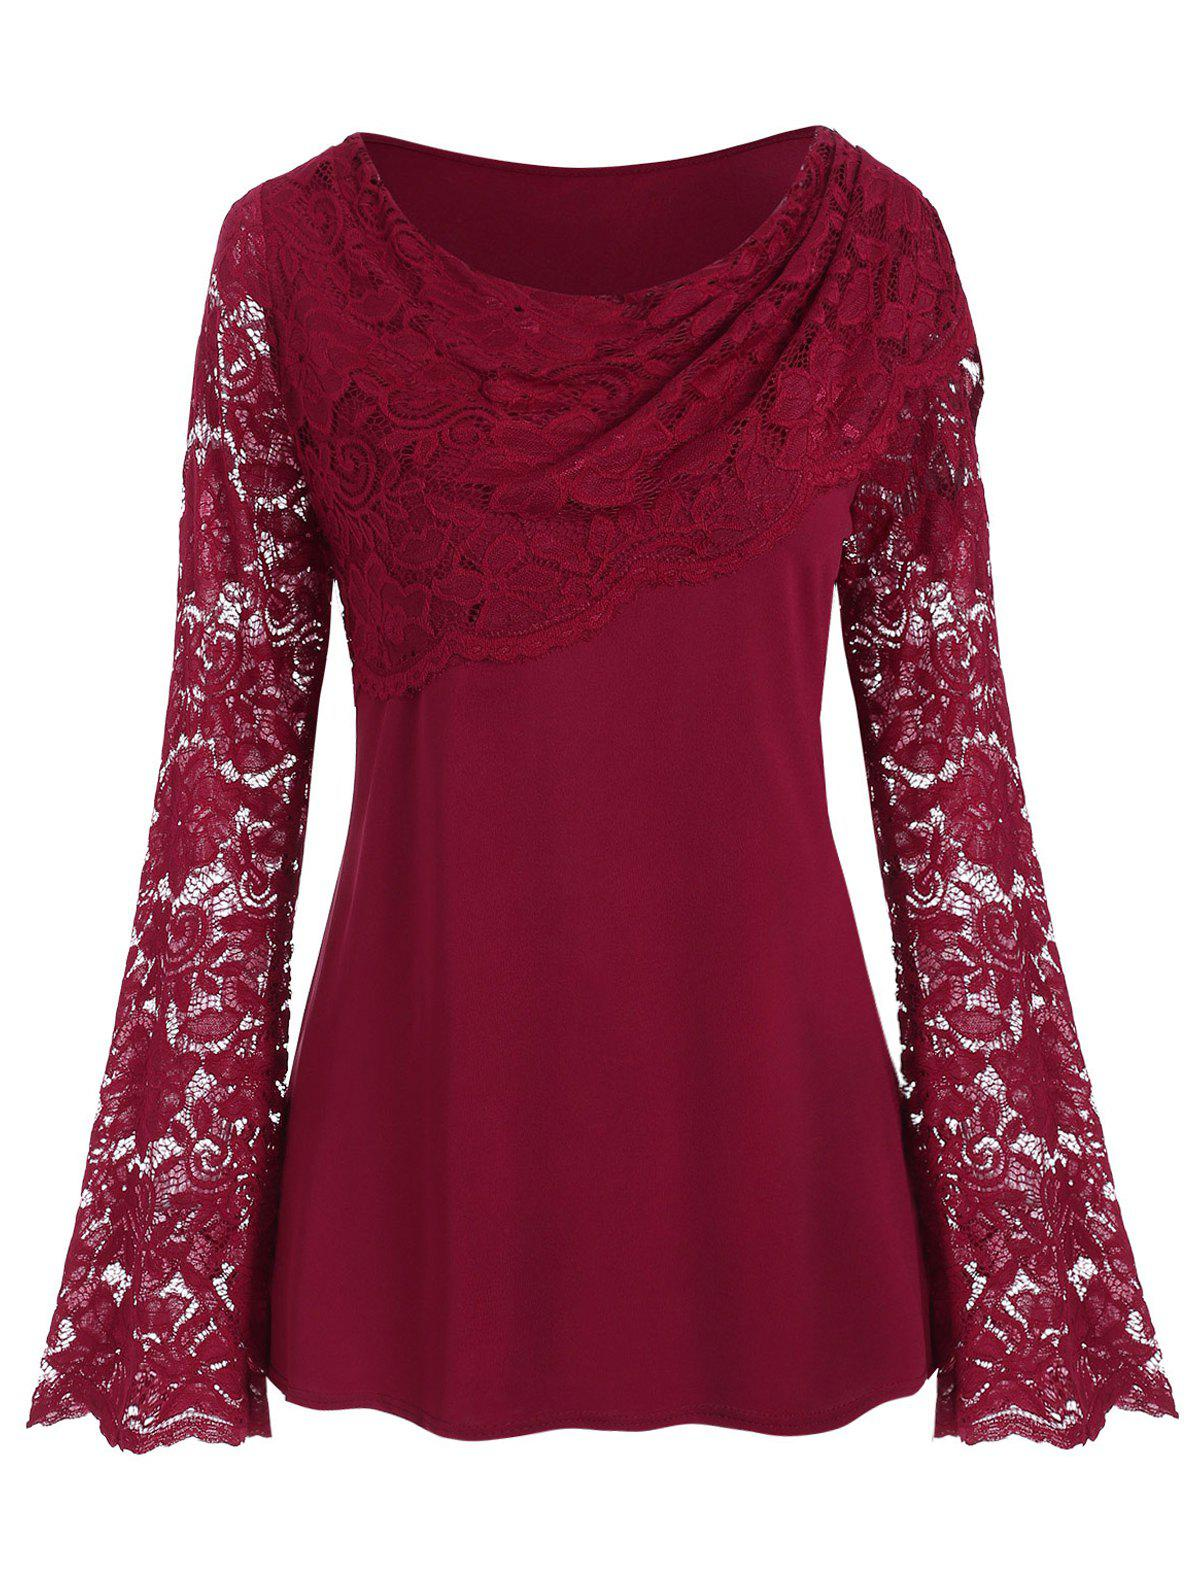 Lace Panel Long Sleeve Solid Plus Size Top - RED WINE 5X